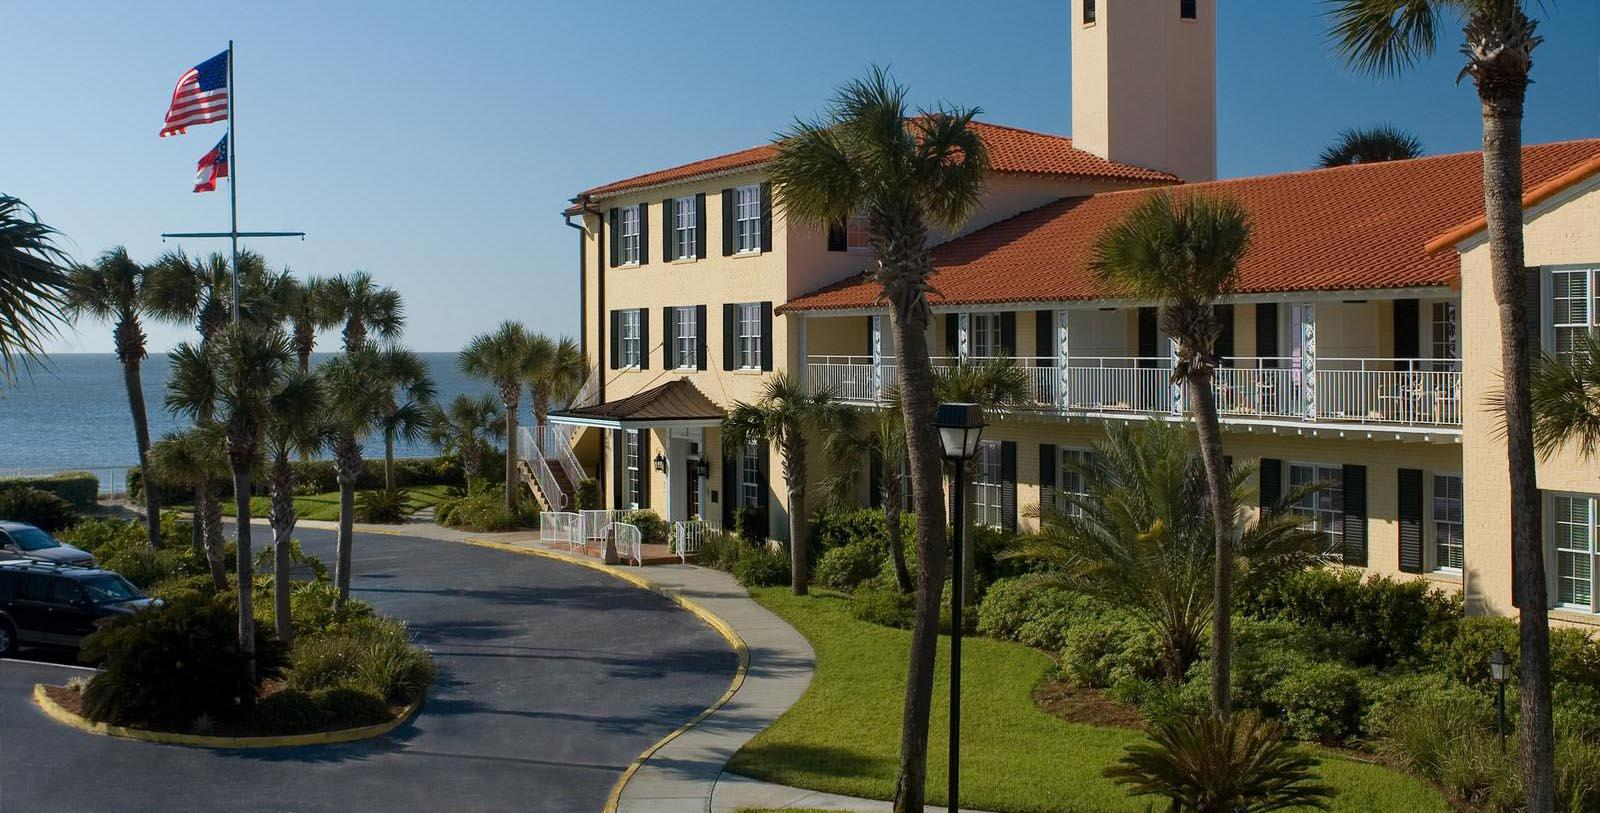 Image of Hotel Exterior The King and Prince Beach and Golf Resort, 1935, Member of Historic Hotels of America, on St. Simons Island, Georgia, Special Offers, Discounted Rates, Families, Romantic Escape, Honeymoons, Anniversaries, Reunions